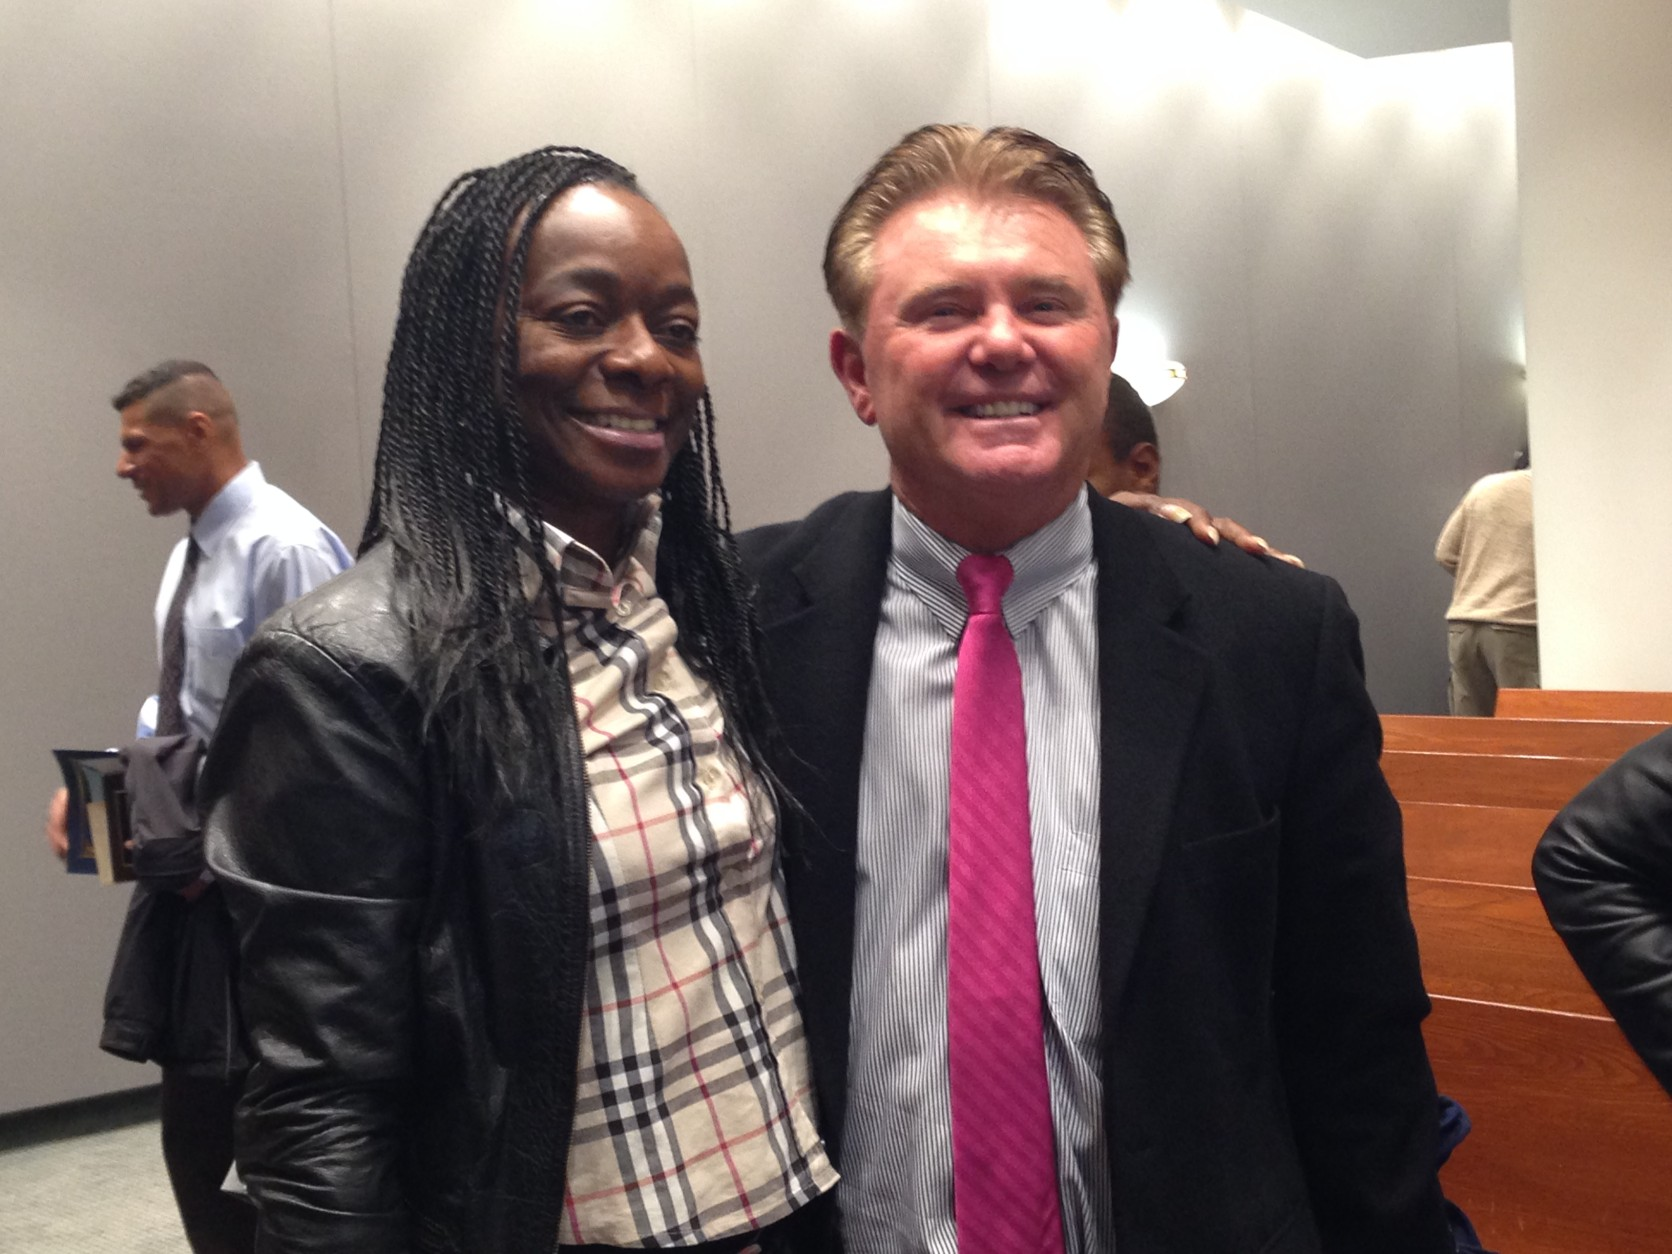 Shuletta Moore, a recovering drug addict who graduated from the Montgomery County Drug Court in 2010. She was the guest speaker at the November 2014 graduating class on the 10th anniversary of Drug Court. She is pictured here with  Maryland State's Attorney John McCarthy. (WTOP/Jamie Forzato)